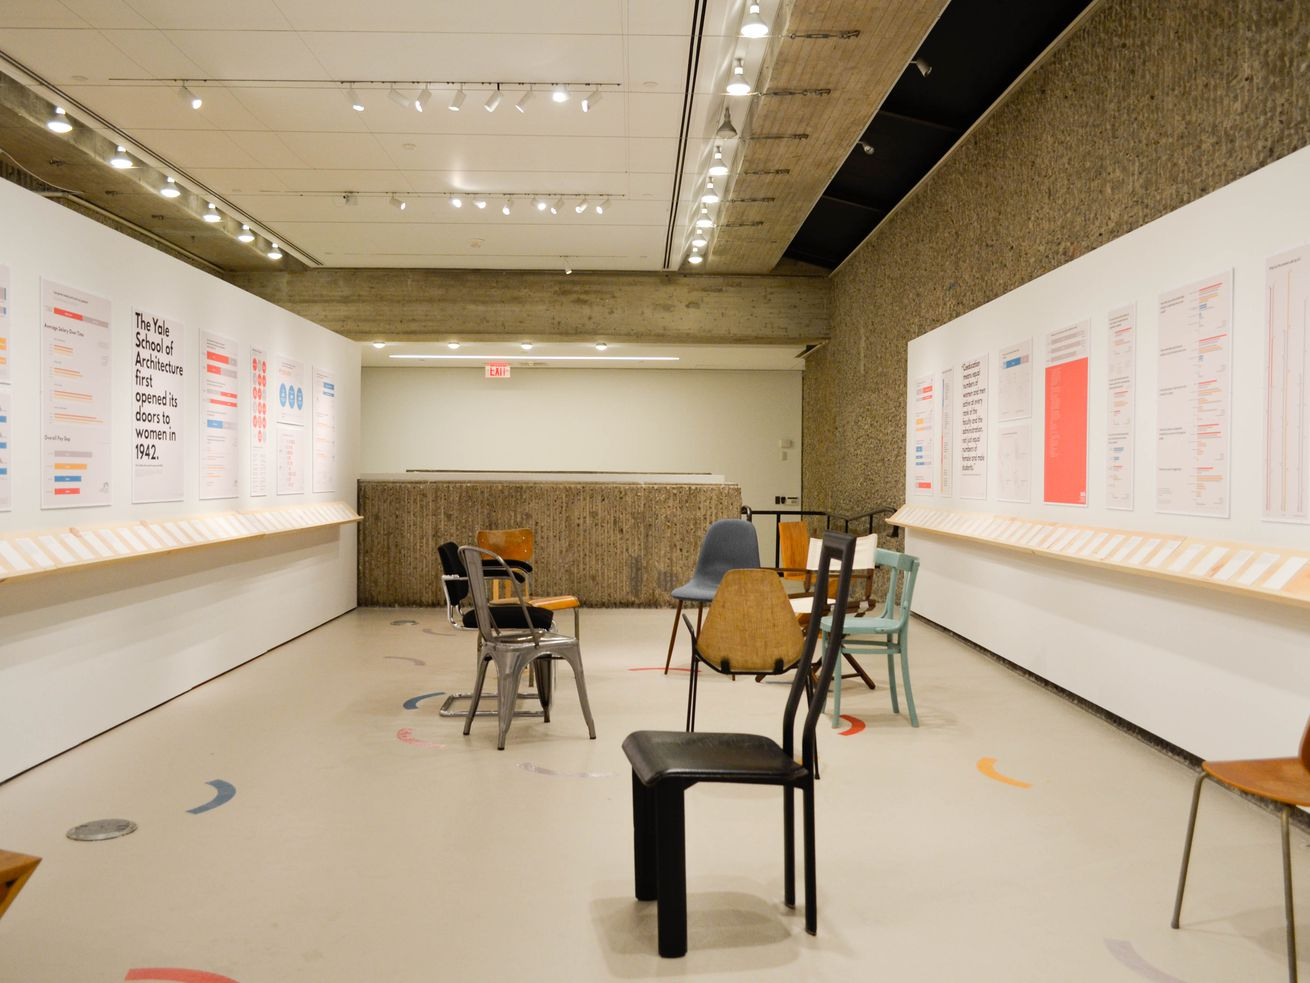 Yale School of Architecture exhibition questions gender disparity in the industry